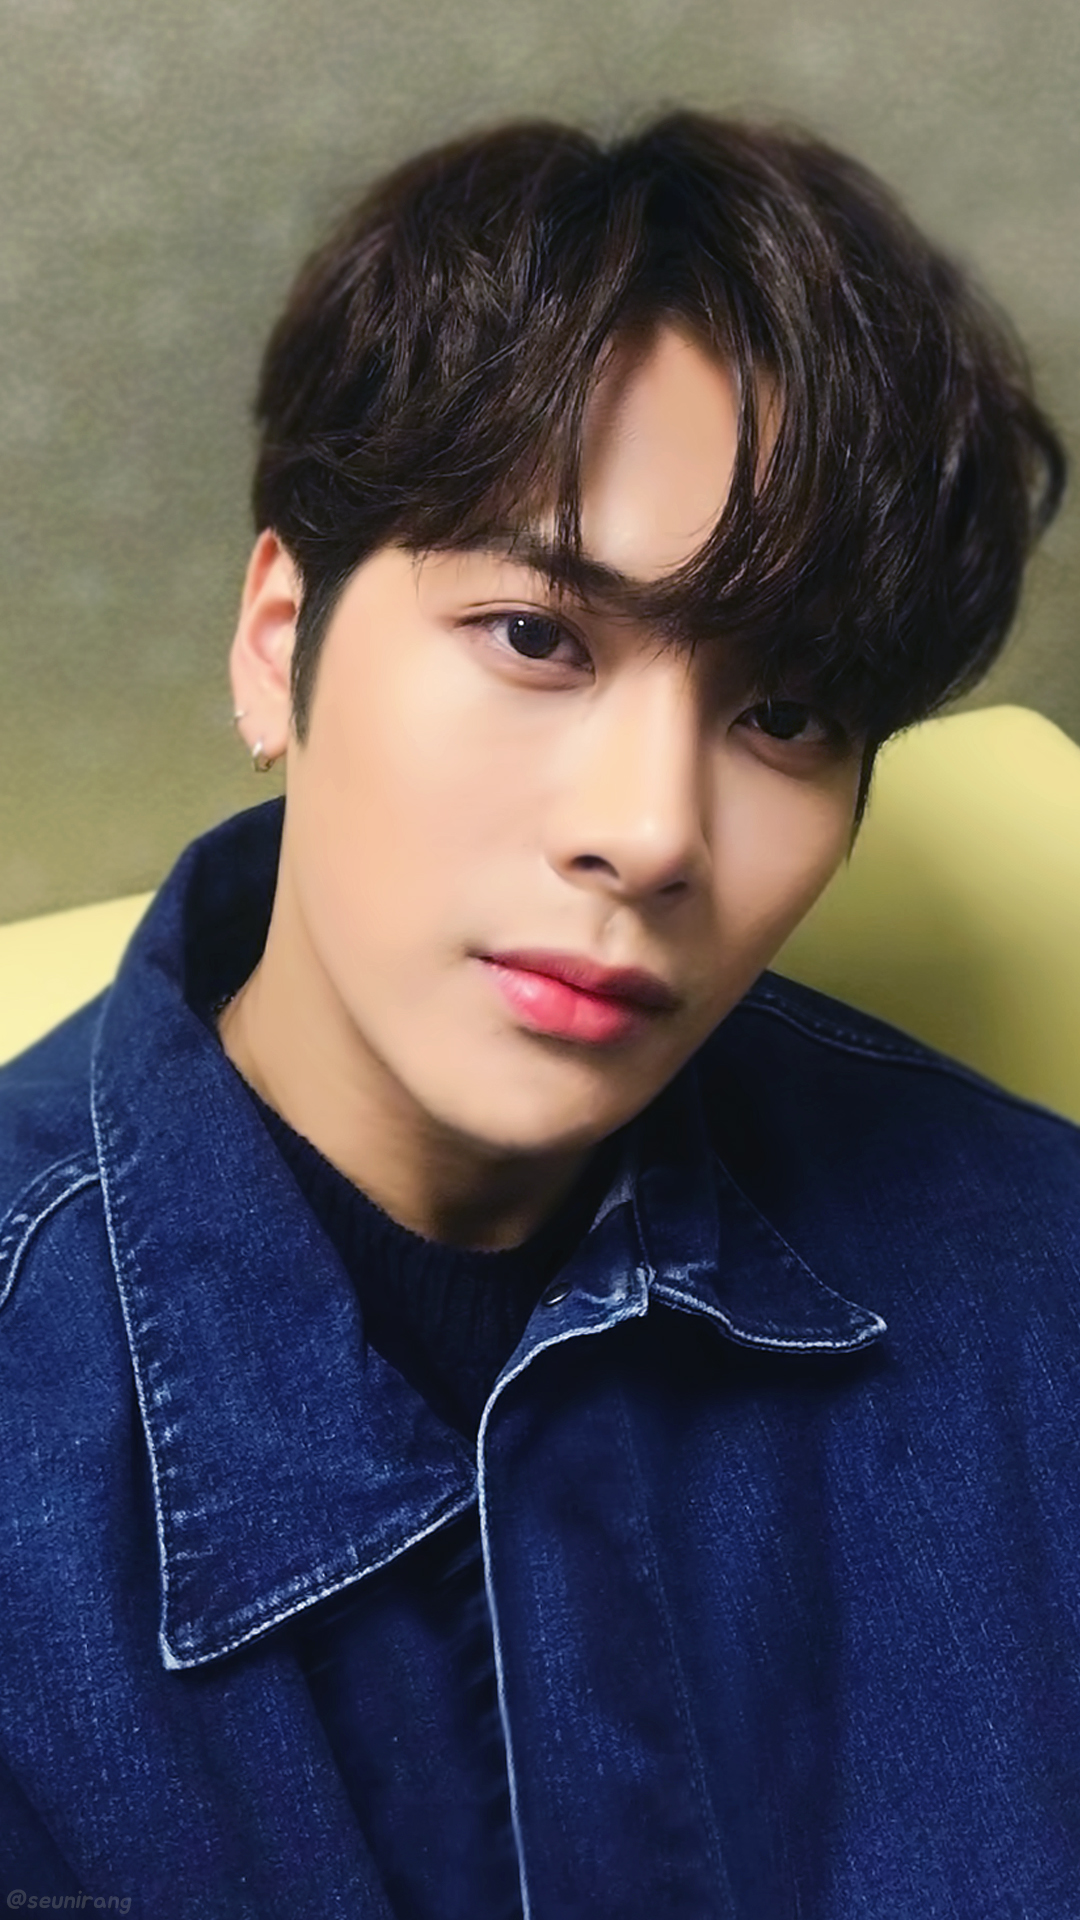 V Bts Ama 2017 >> TRENDING) GOT7's Jackson To Make A Special Appearance On 2017 AMA - Koreaboo